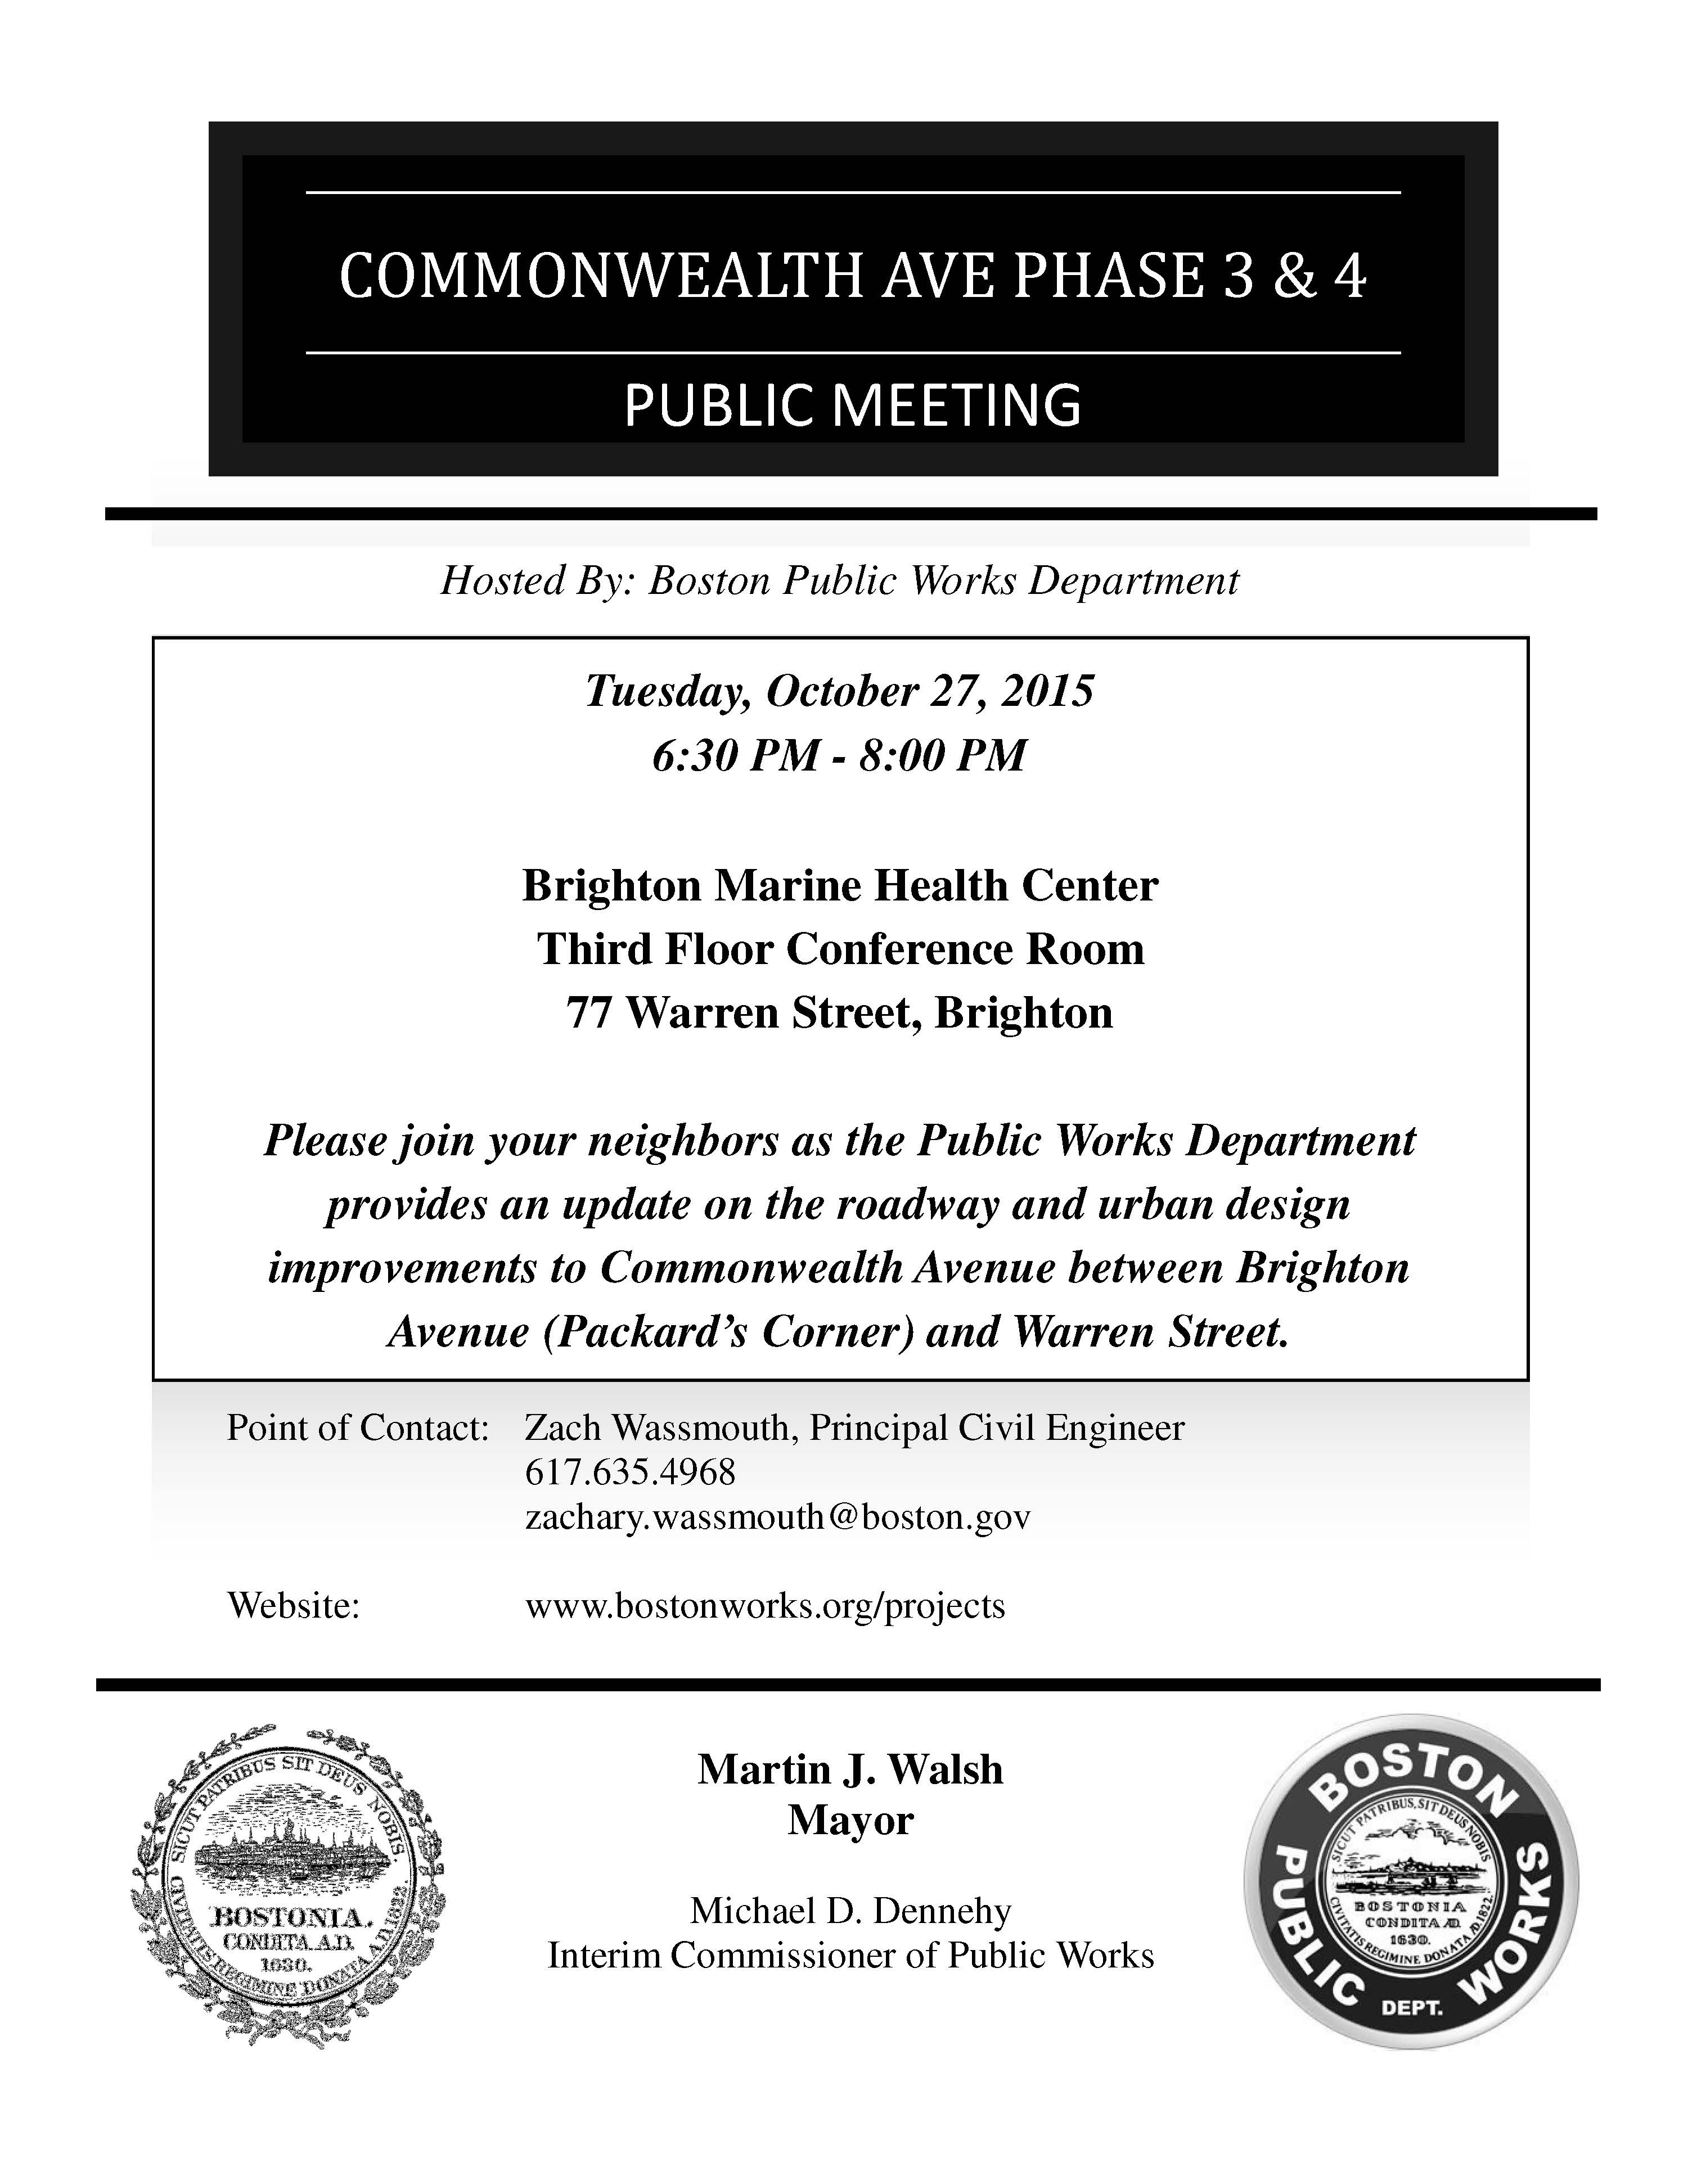 image_10.17.15_Comm_Ave_Phases_3_and_4_Public_Meeting_Announcement.jpg